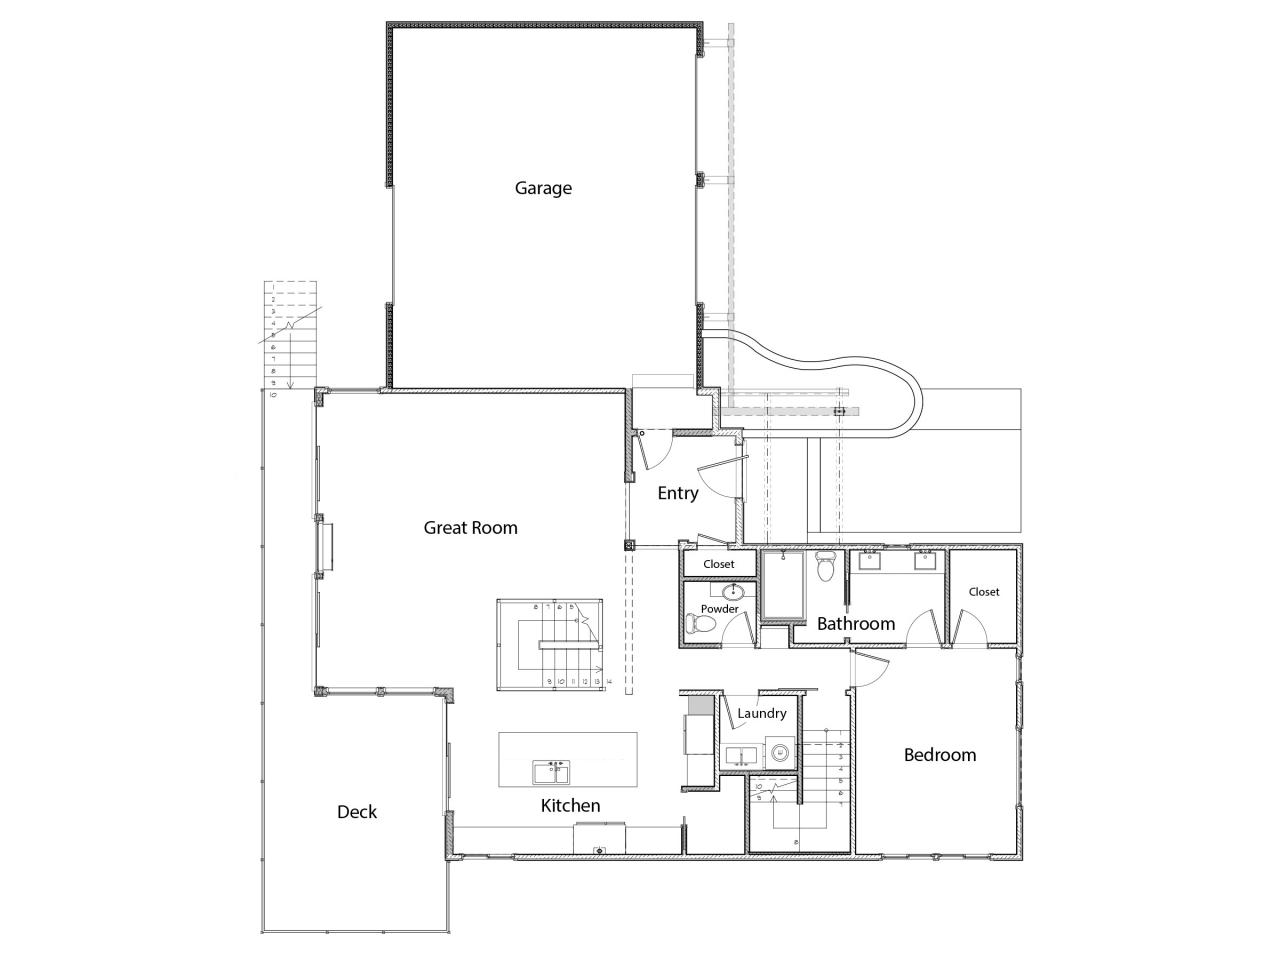 Discover the floor plan for hgtv dream home 2018 hgtv dream home third floor malvernweather